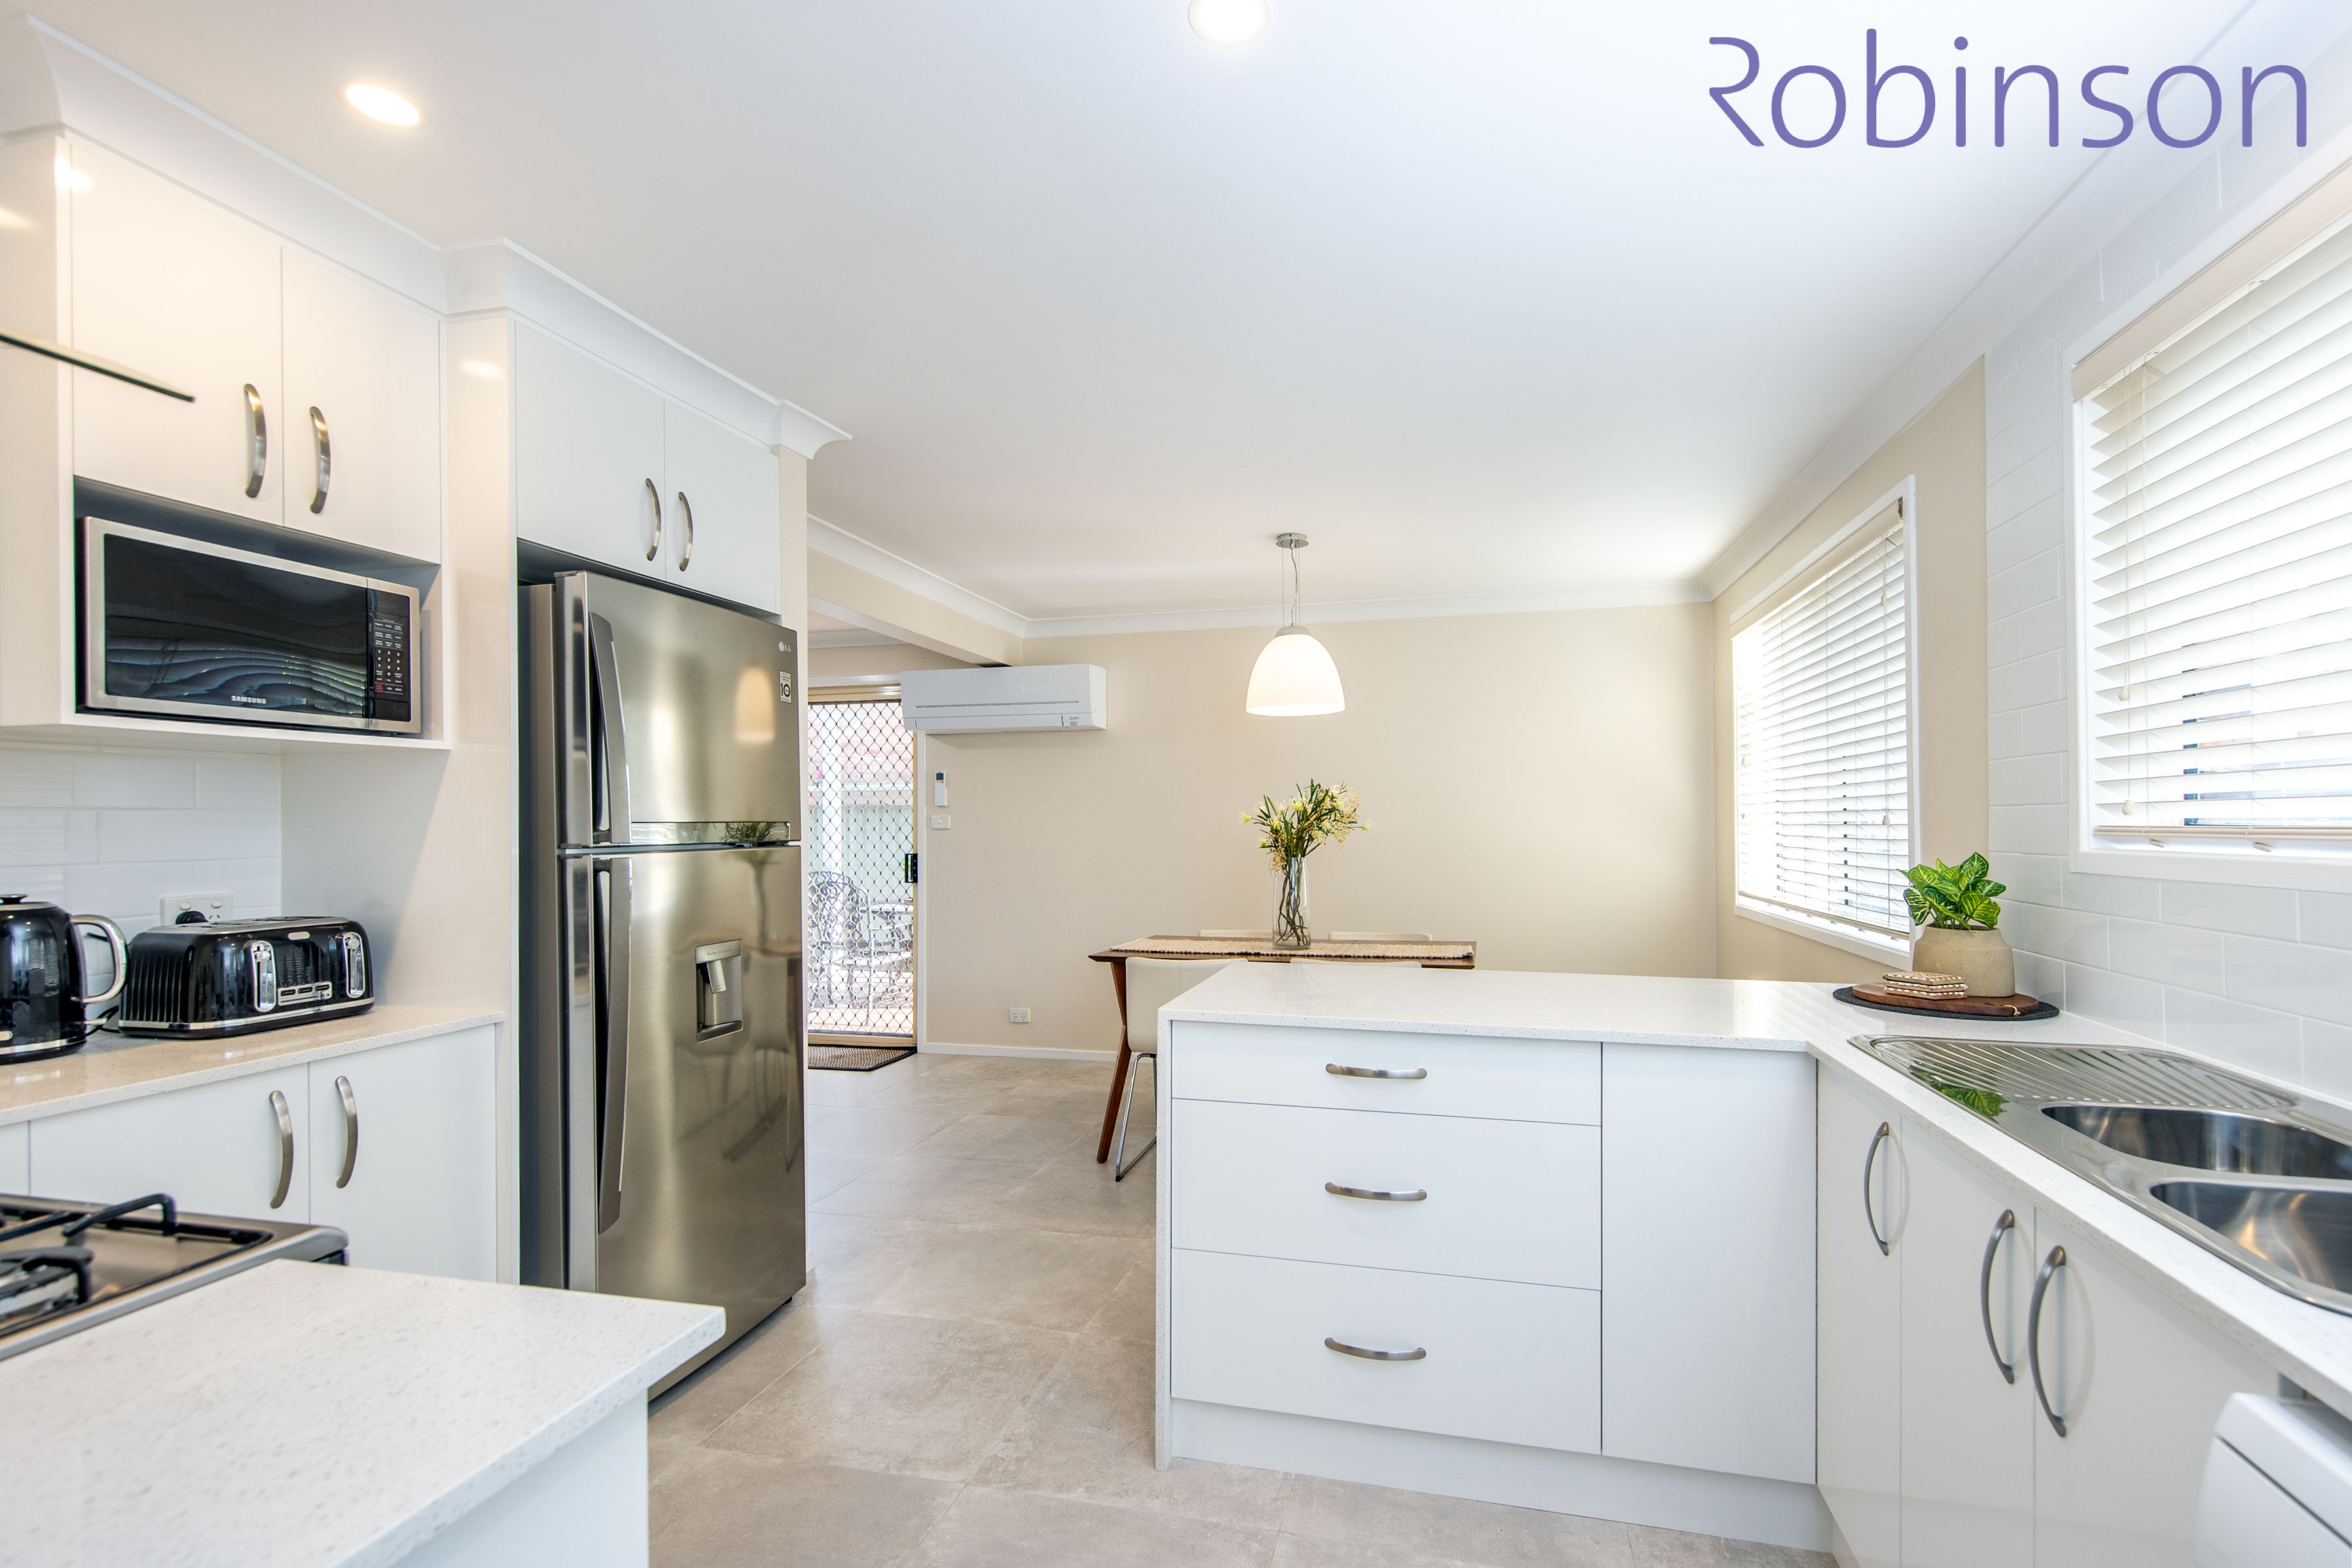 2/300 Darby Street, Cooks Hill